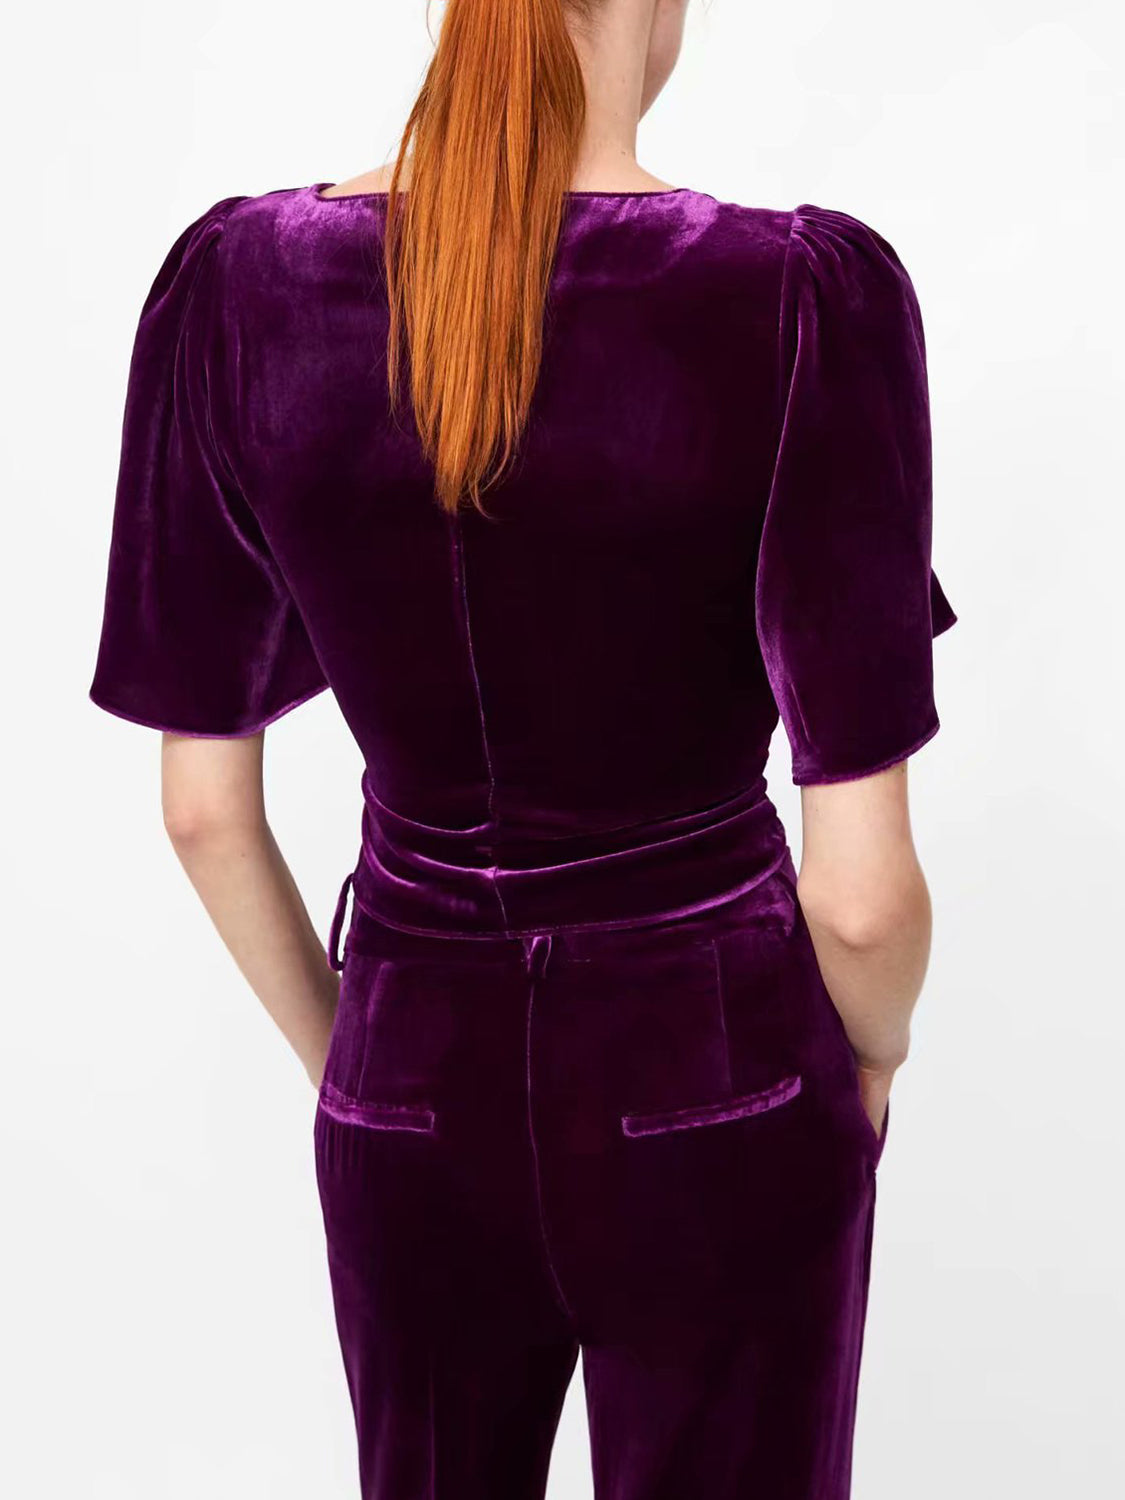 Purple Women Crop Top Velvet V-neck Tie Front Flare Sleeve